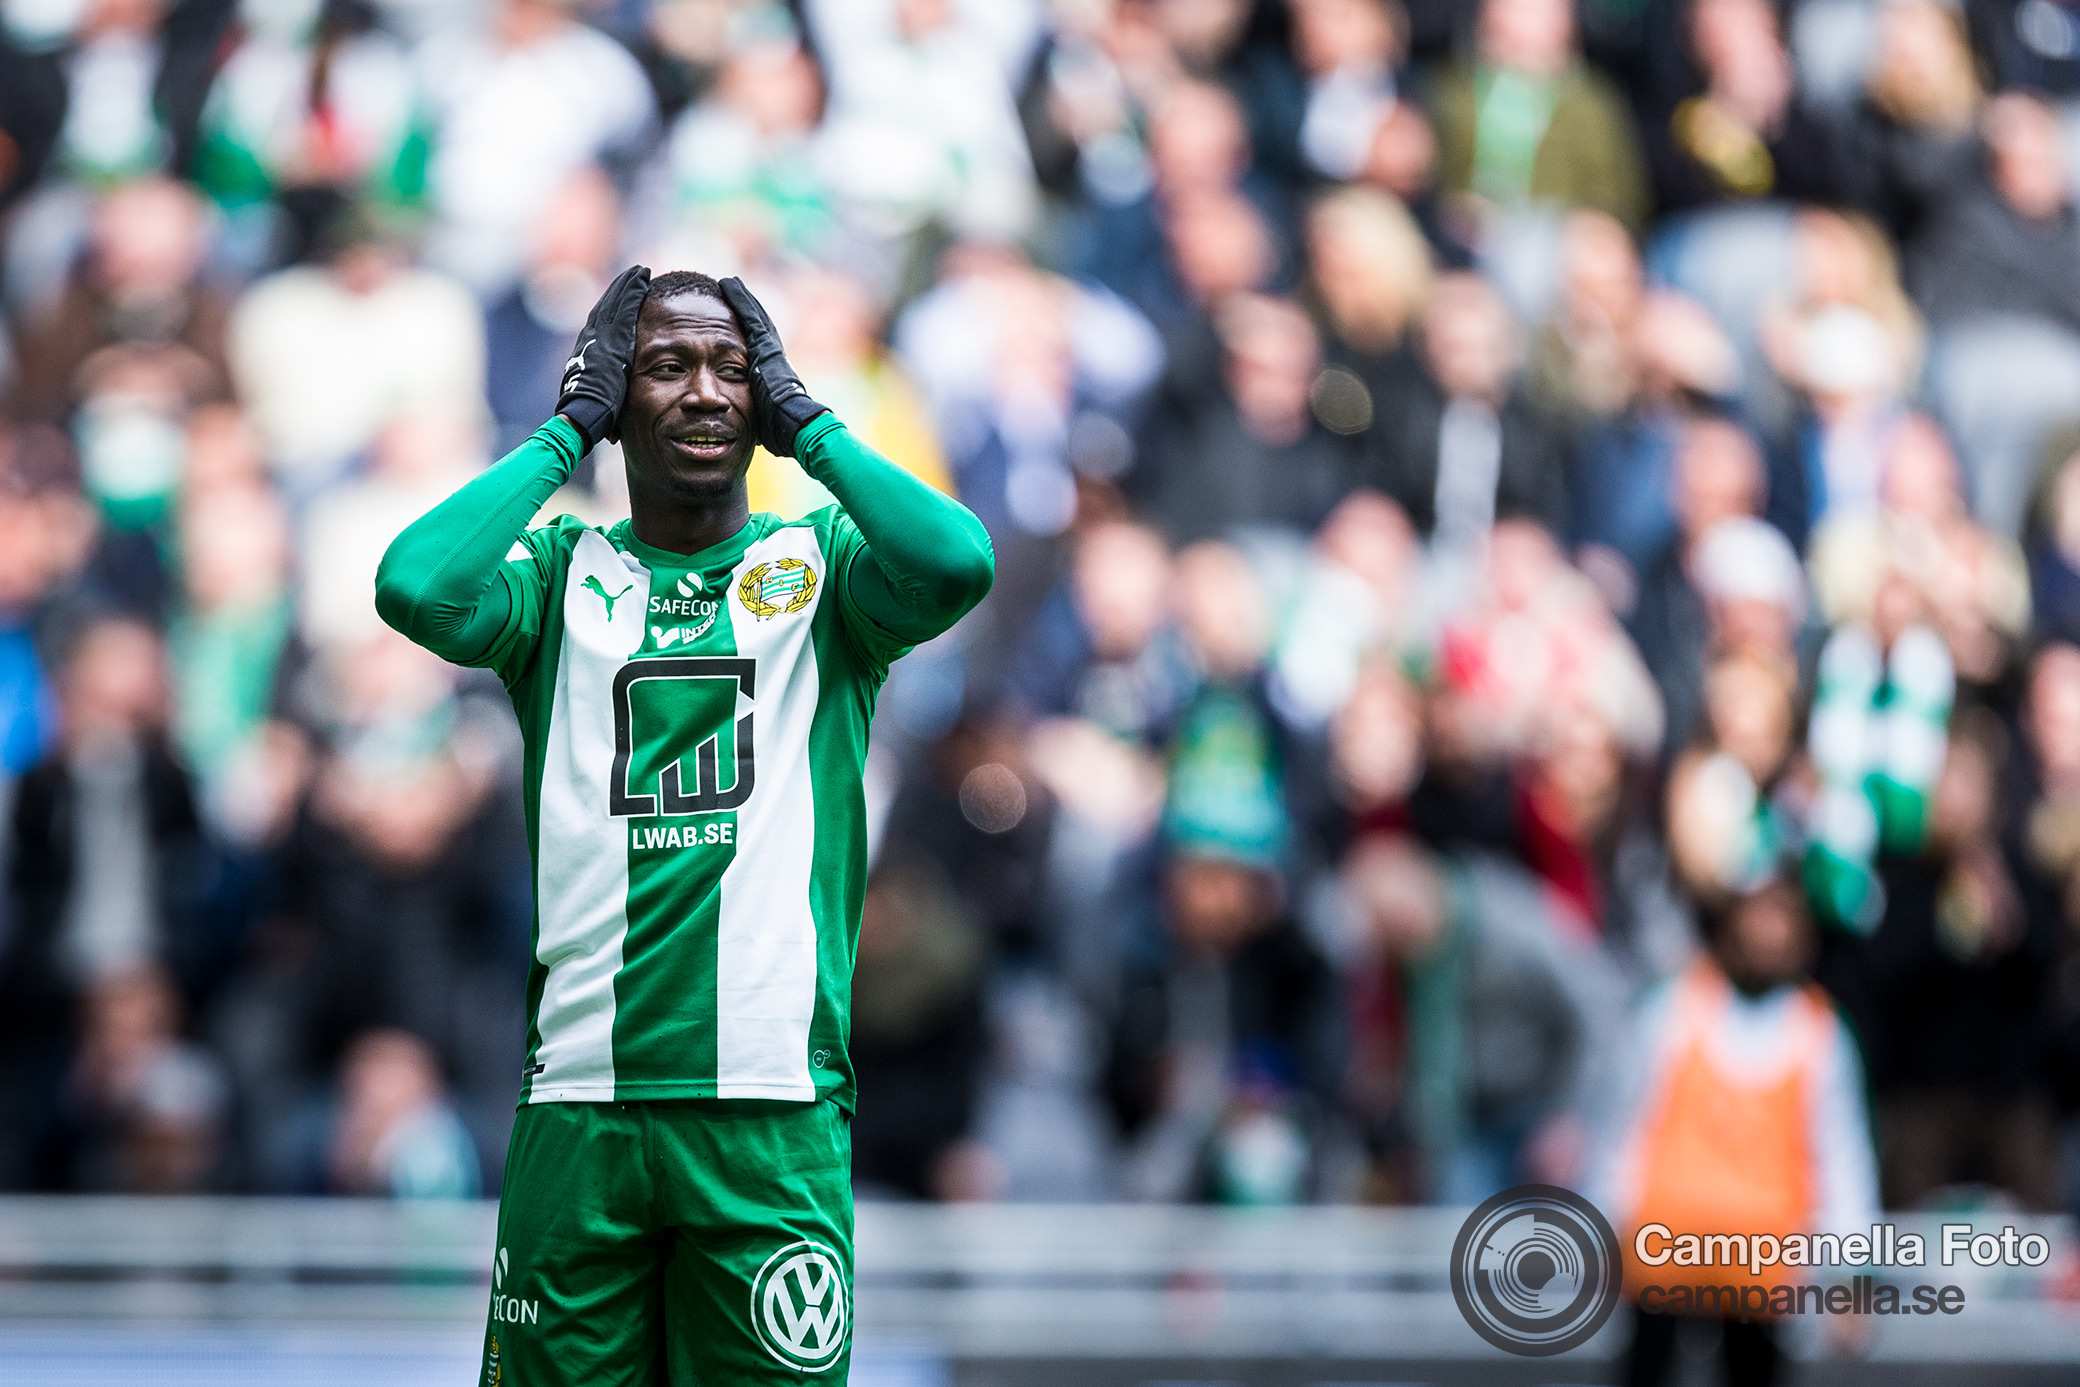 Hammarby - Sundsvall ends in a stale mate - Michael Campanella Photography